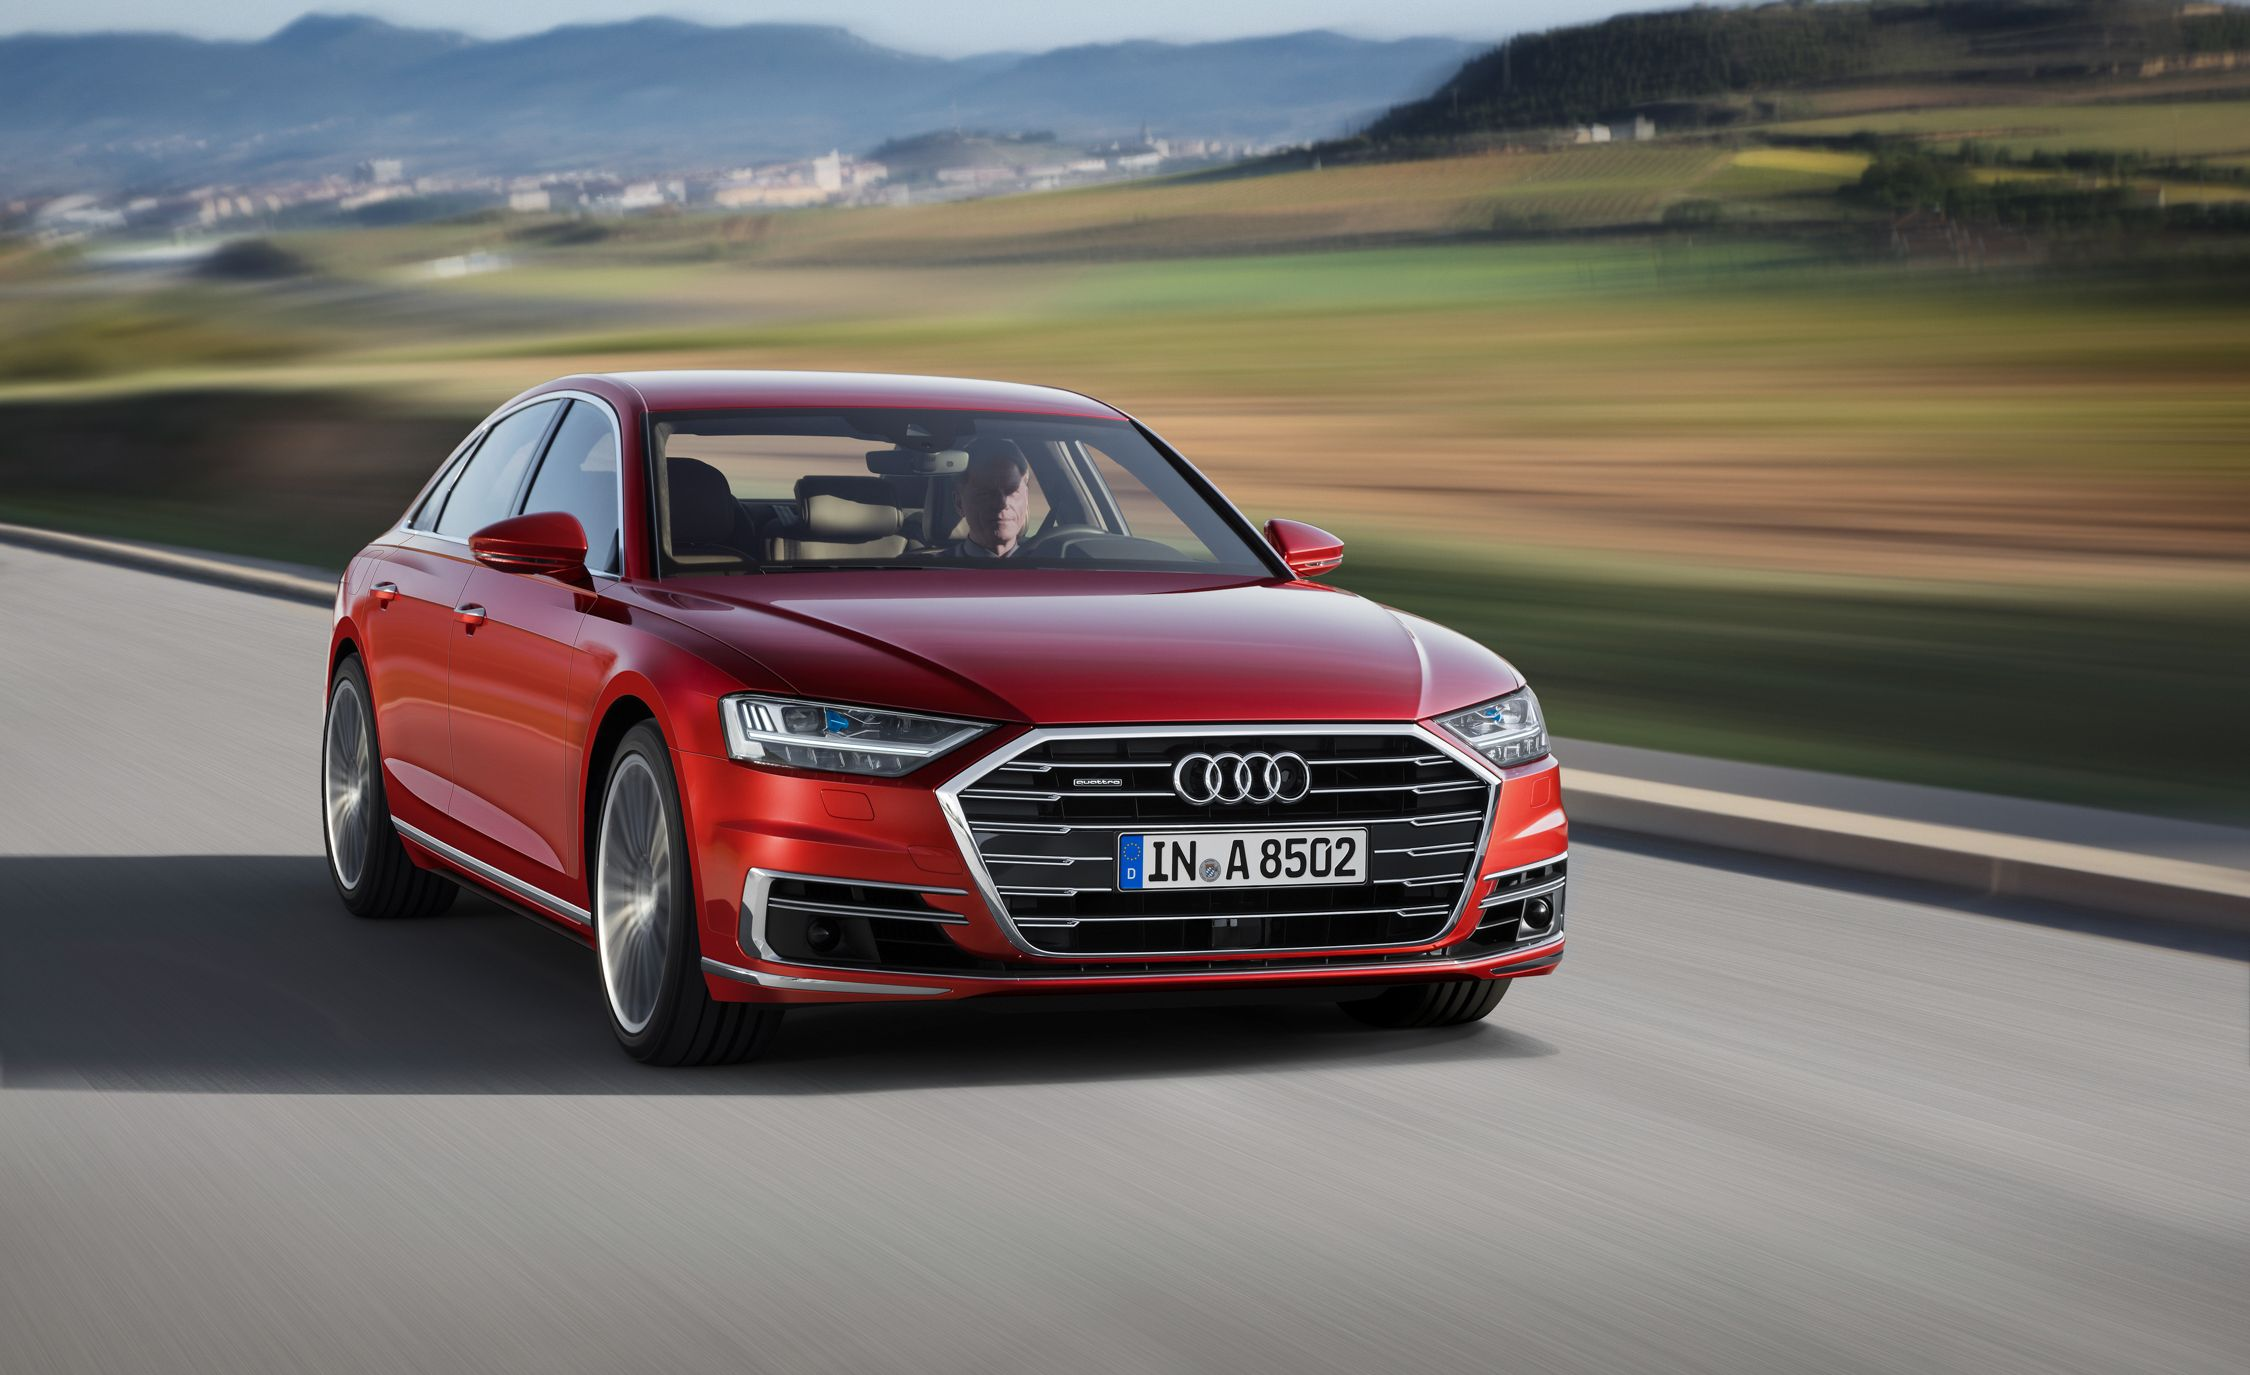 2019 Audi A8 Flagship Floats On Active Suspension